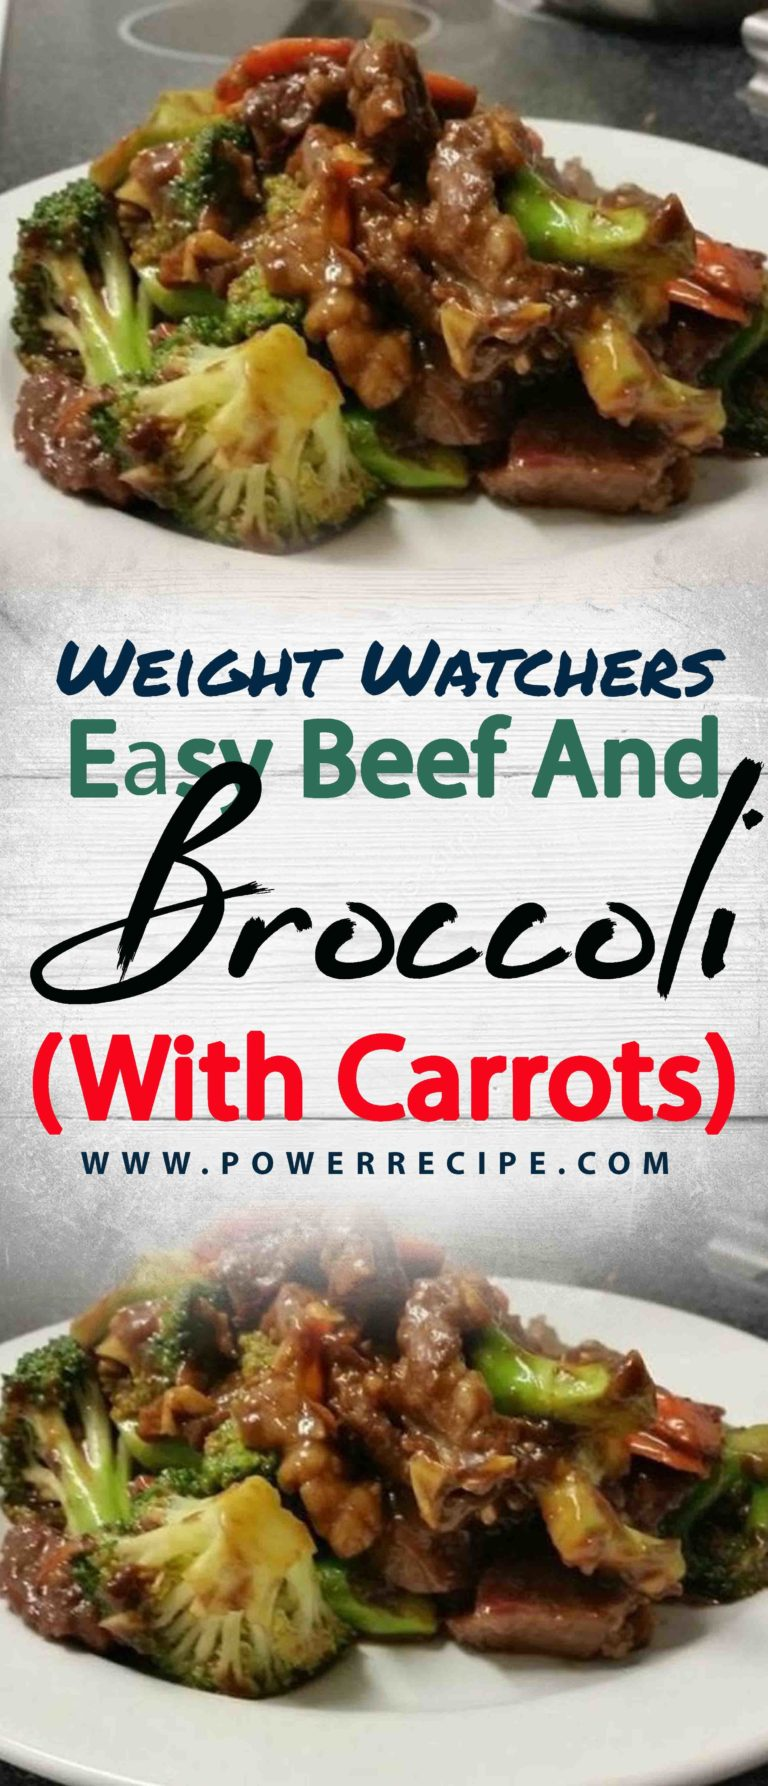 Easy Beef And Broccoli With Carrots Page 2 All About Your Power Recipes Easy Beef And Broccoli Broccoli Beef Easy Beef